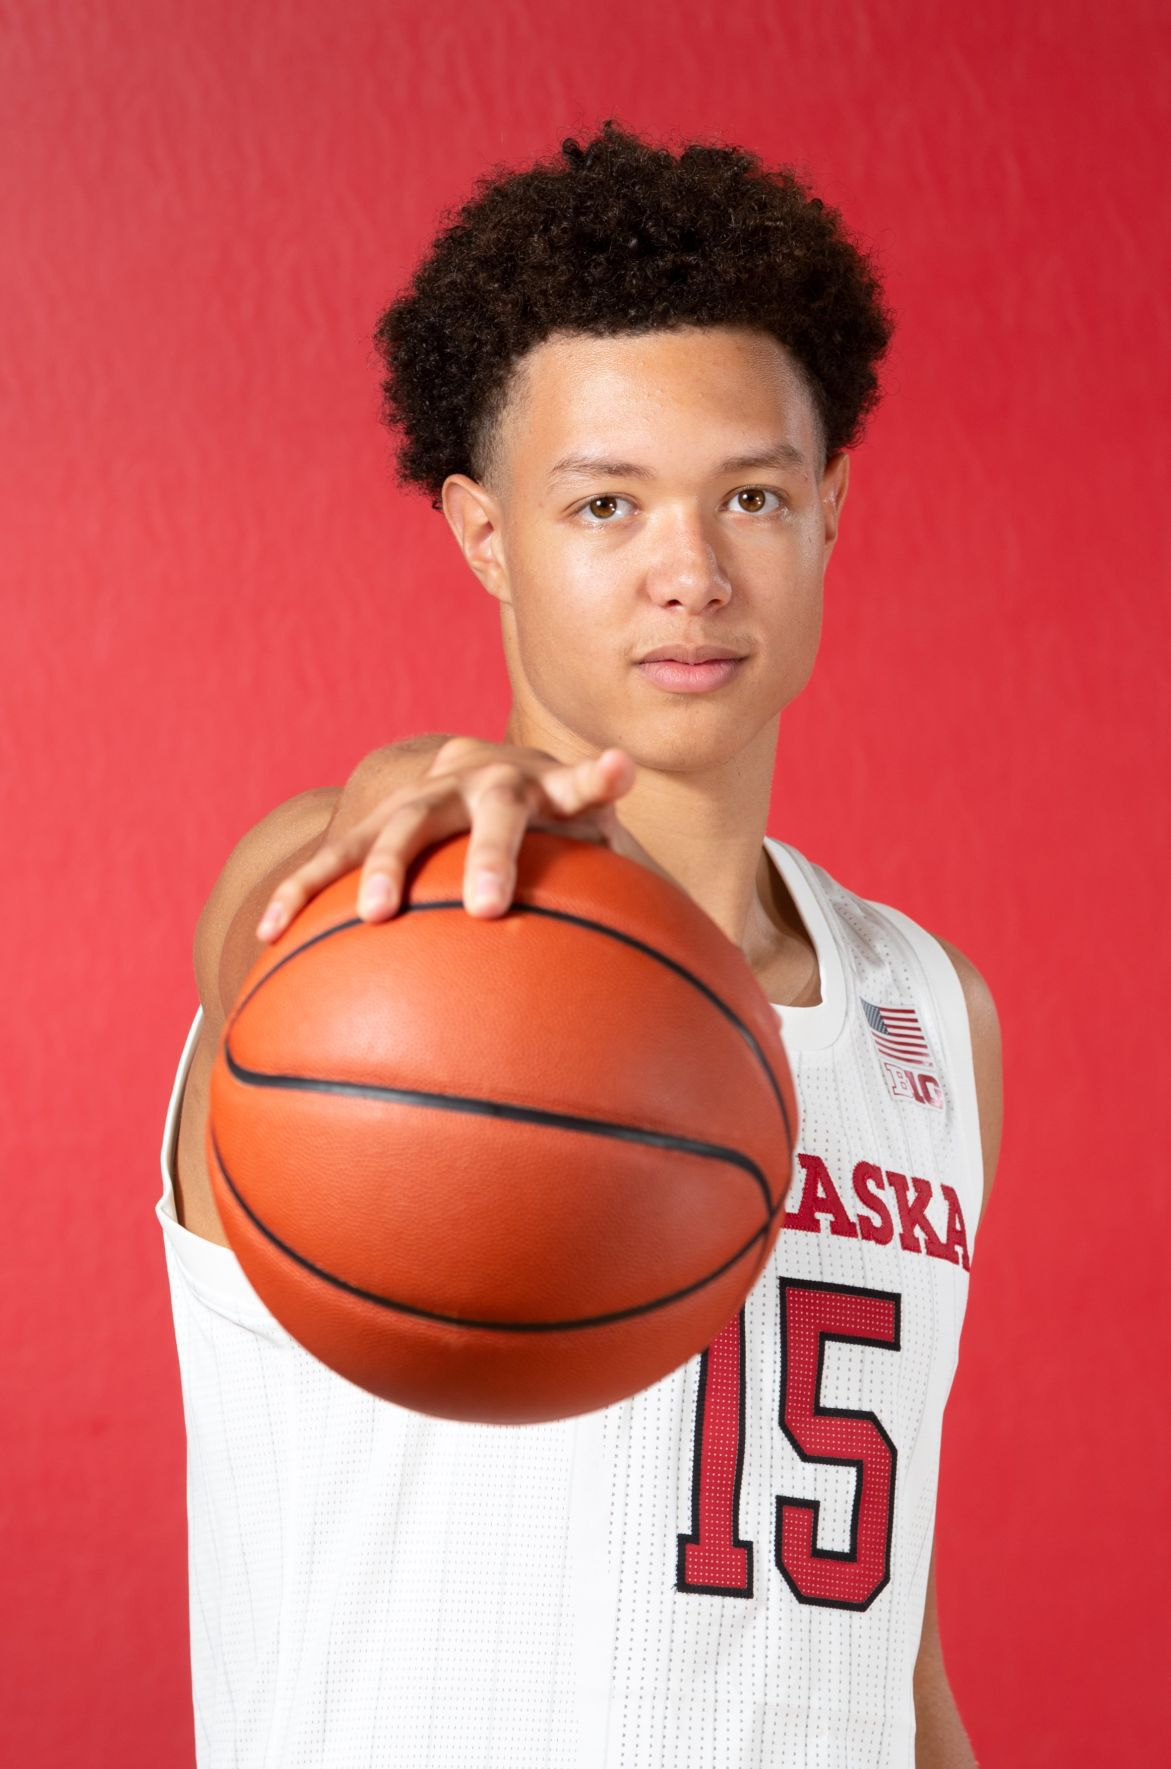 d51cb13ea5 Yes, Isaiah Roby knows it, too; Husker has NBA potential and could lead. ""